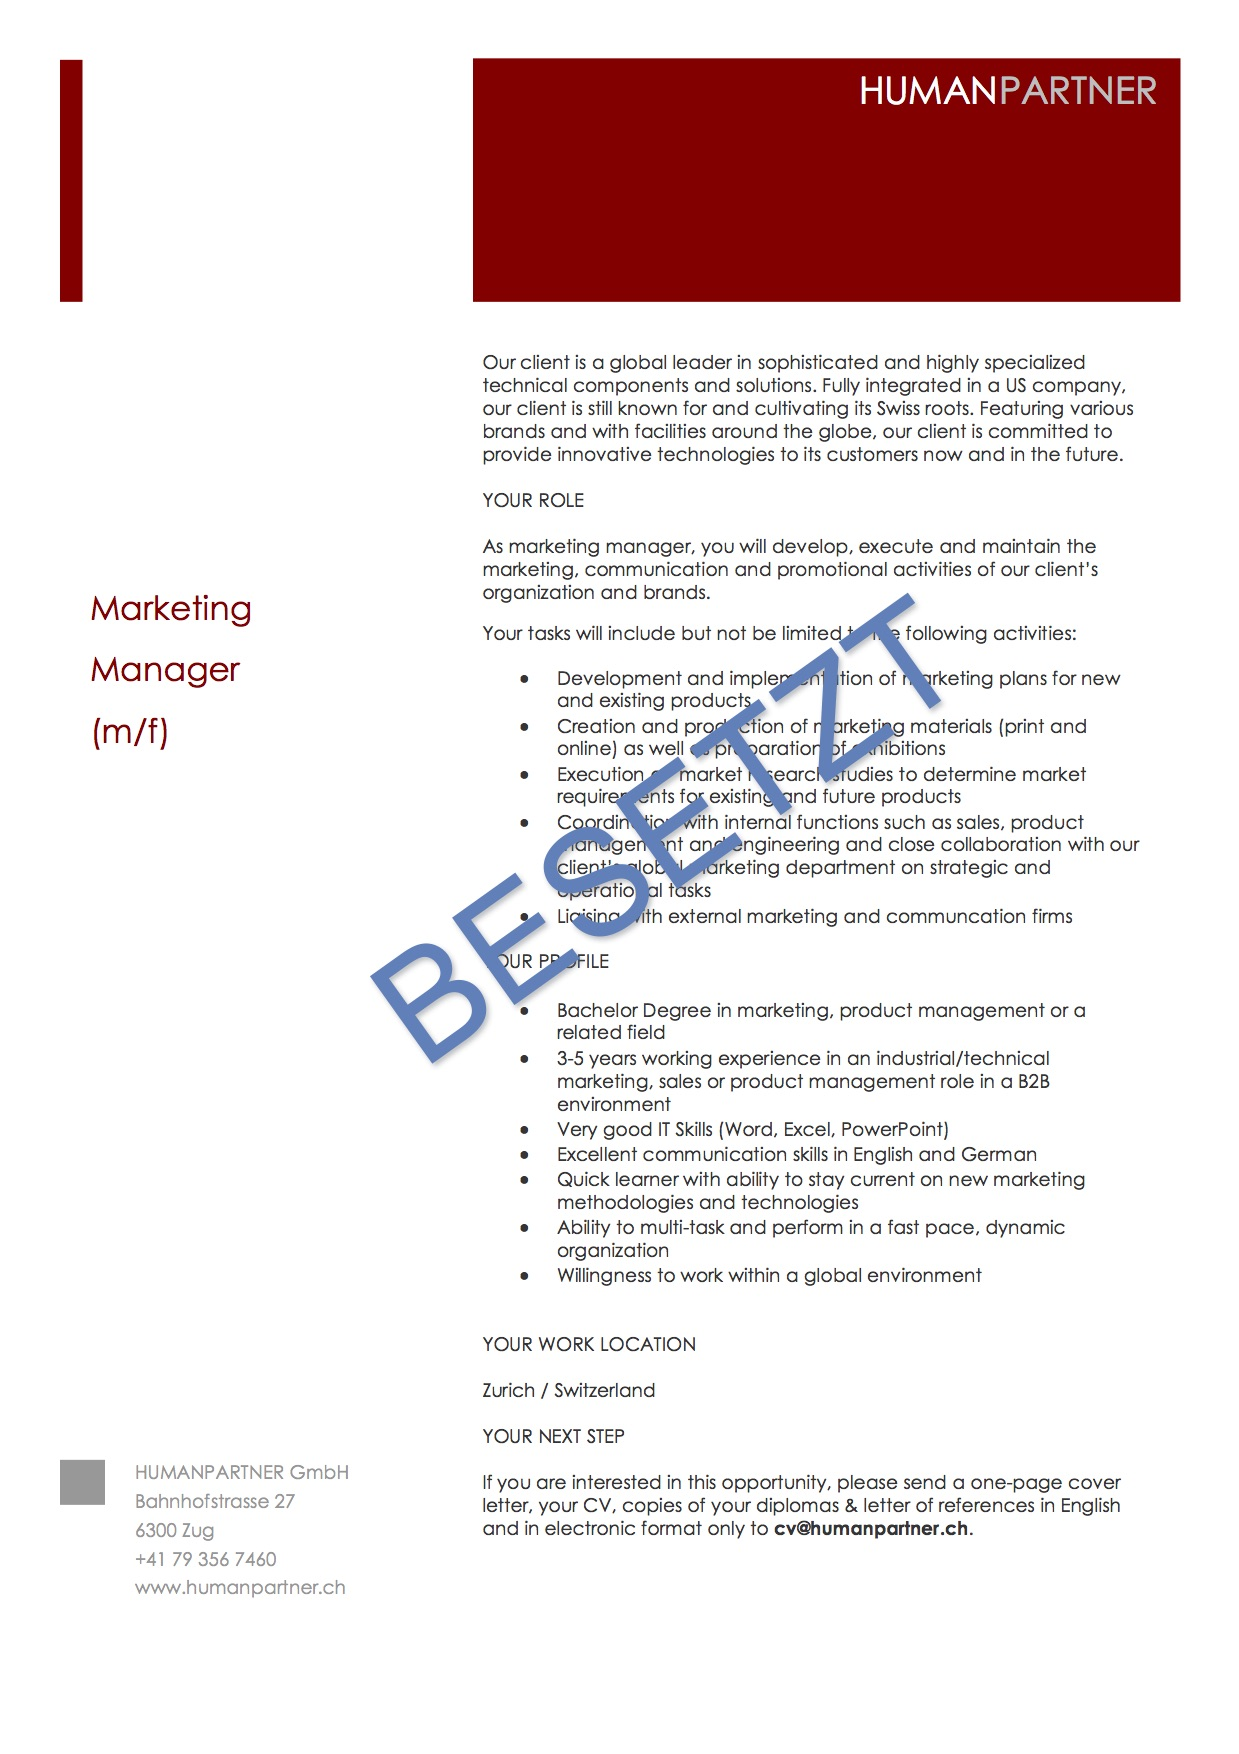 Marketing Manager